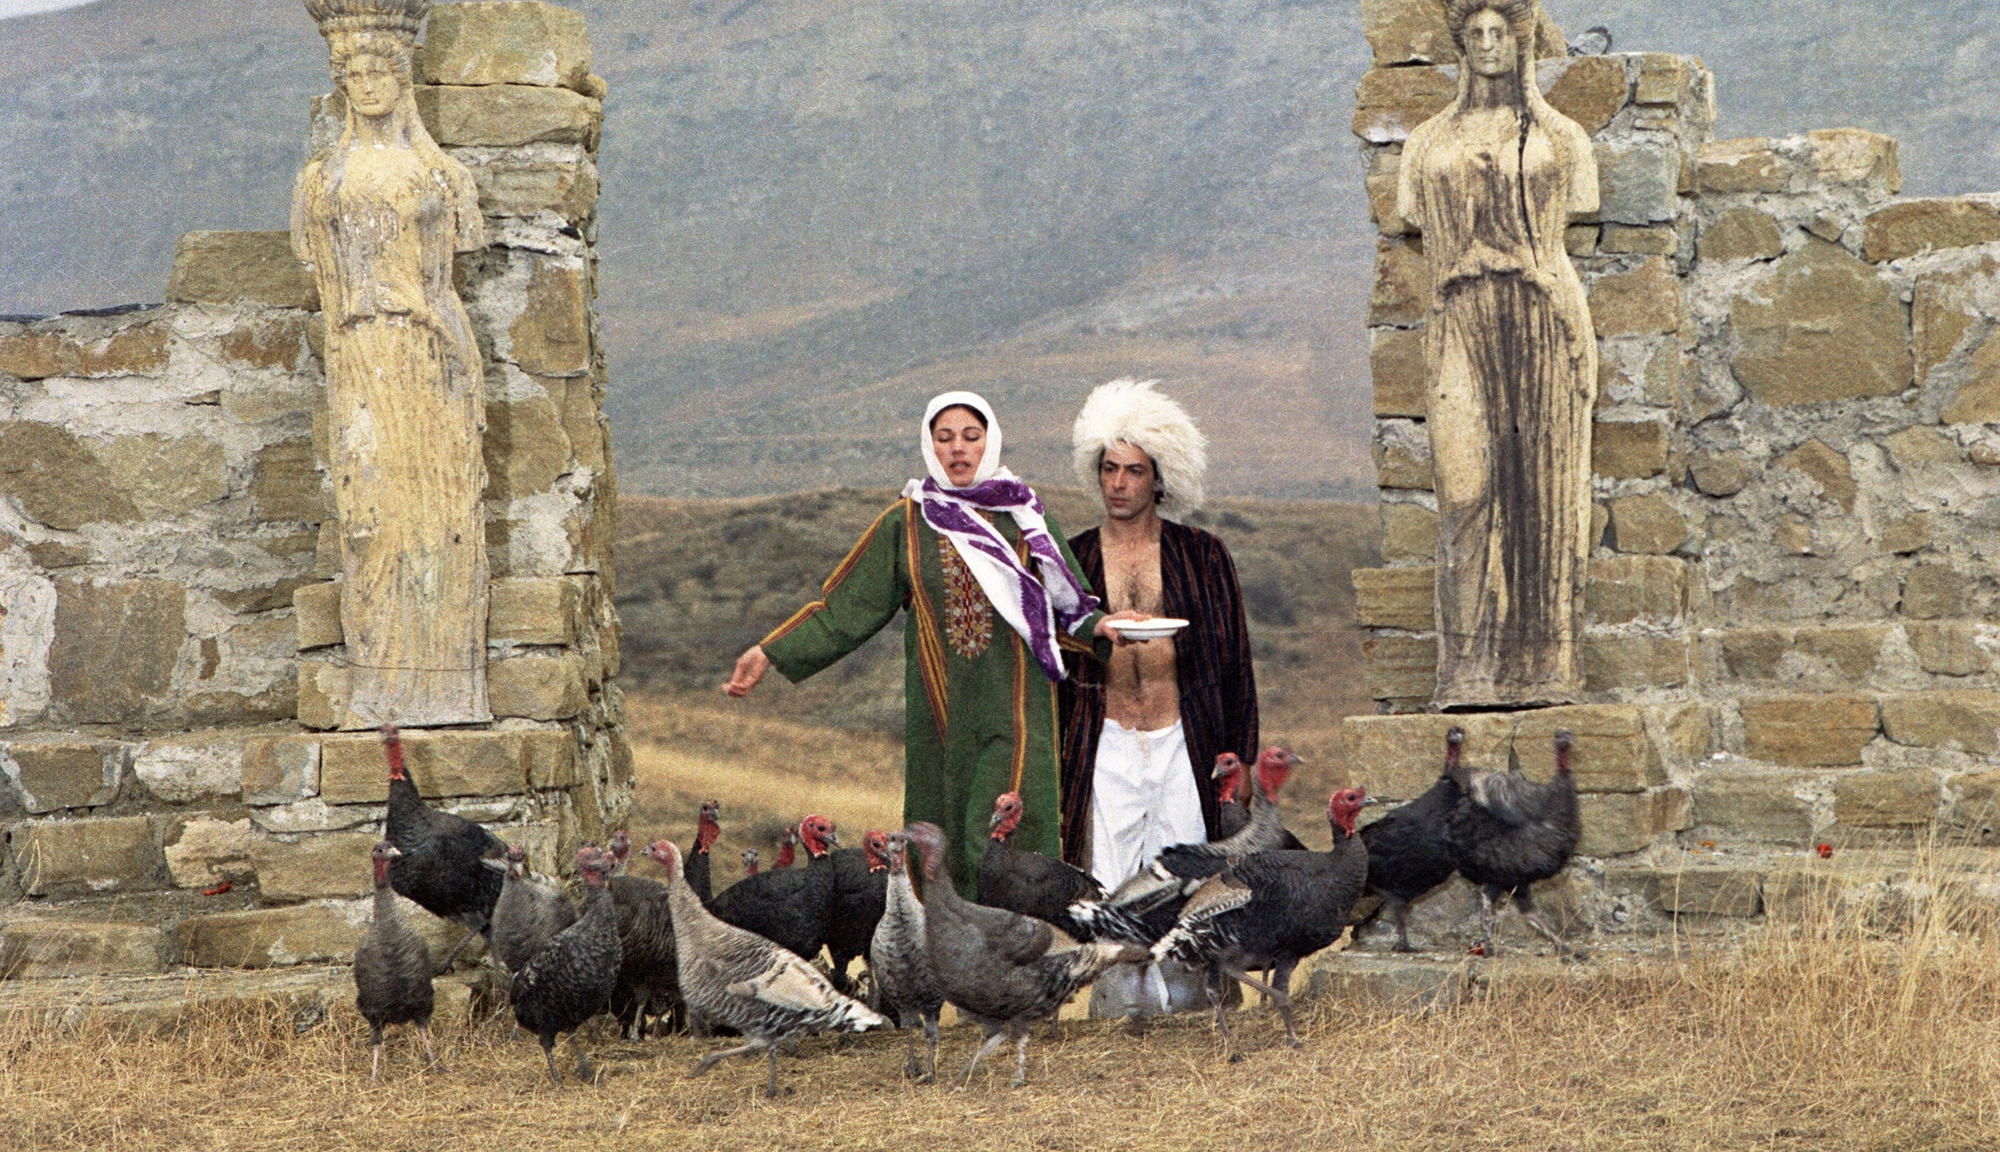 The Legend of Surami Fortress by Sergei Parajanov